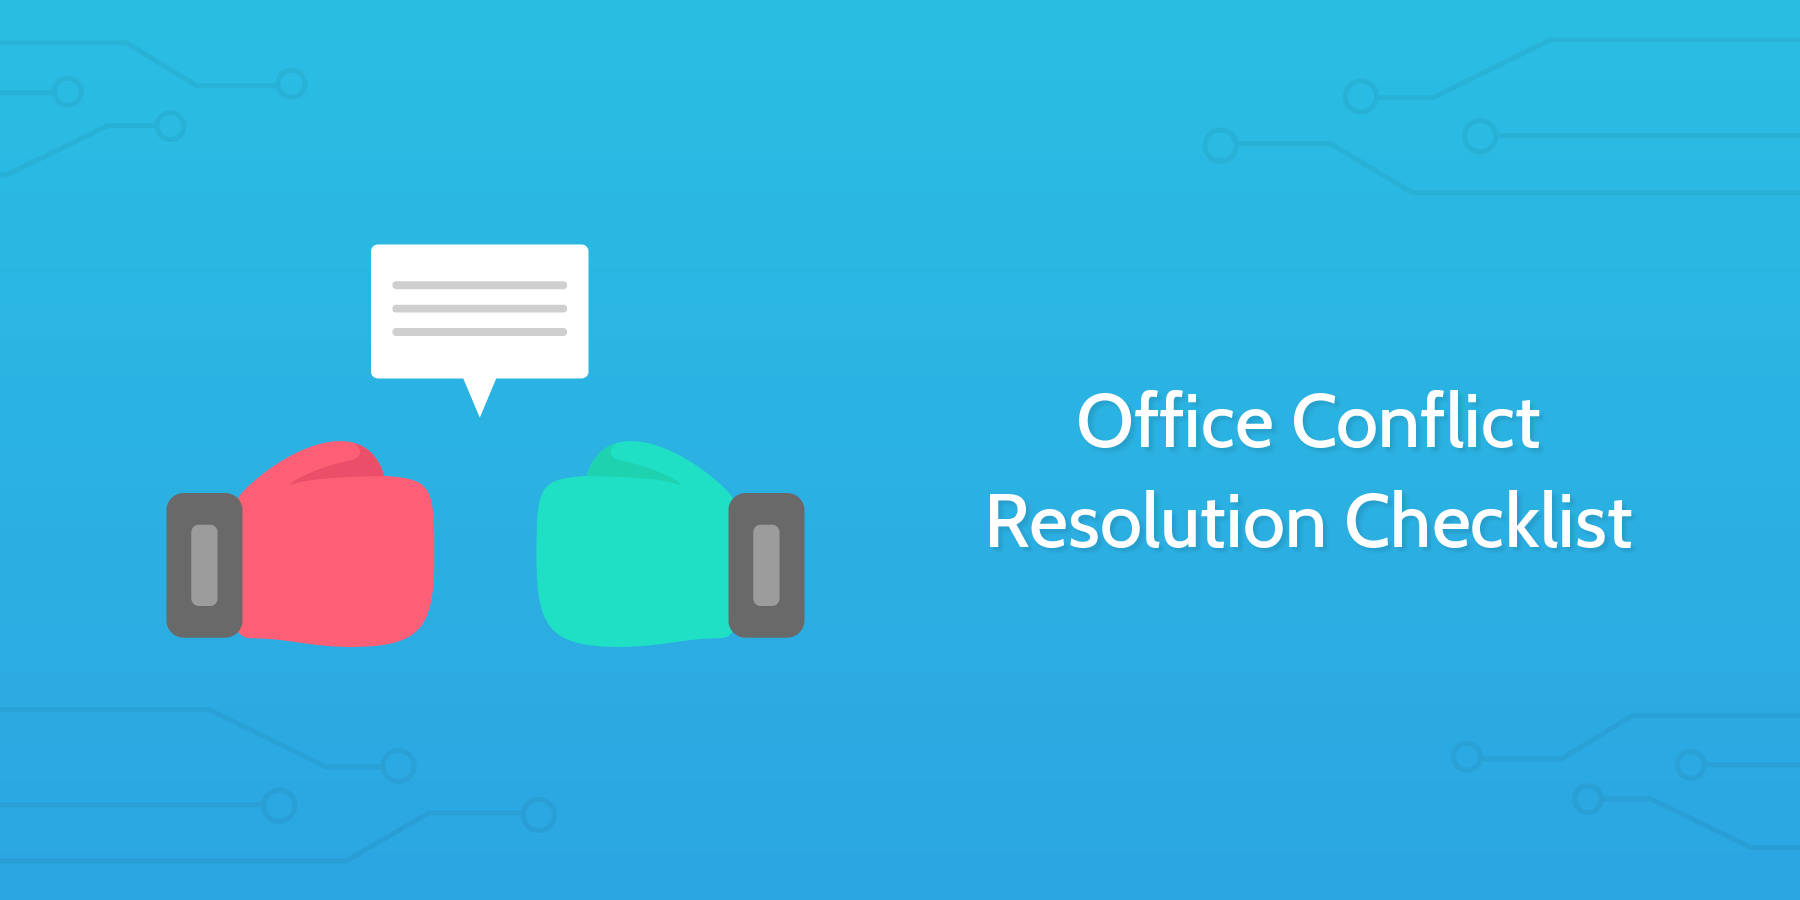 office conflict resolution checklist